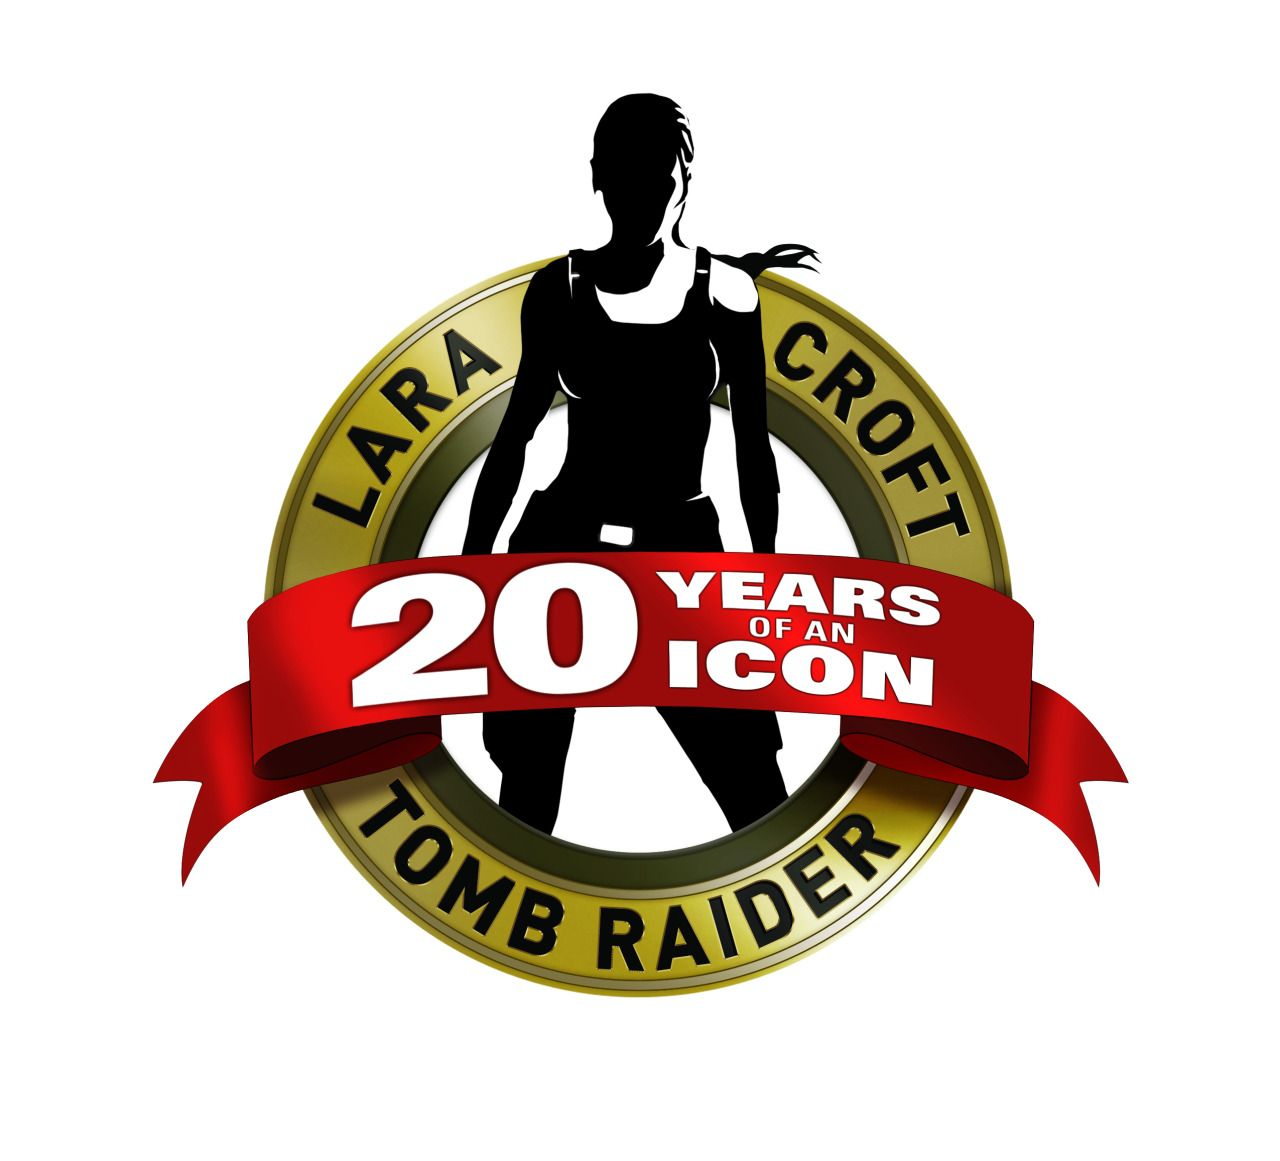 In Celebration Of The 20 Year Anniversary Of Tomb Raider